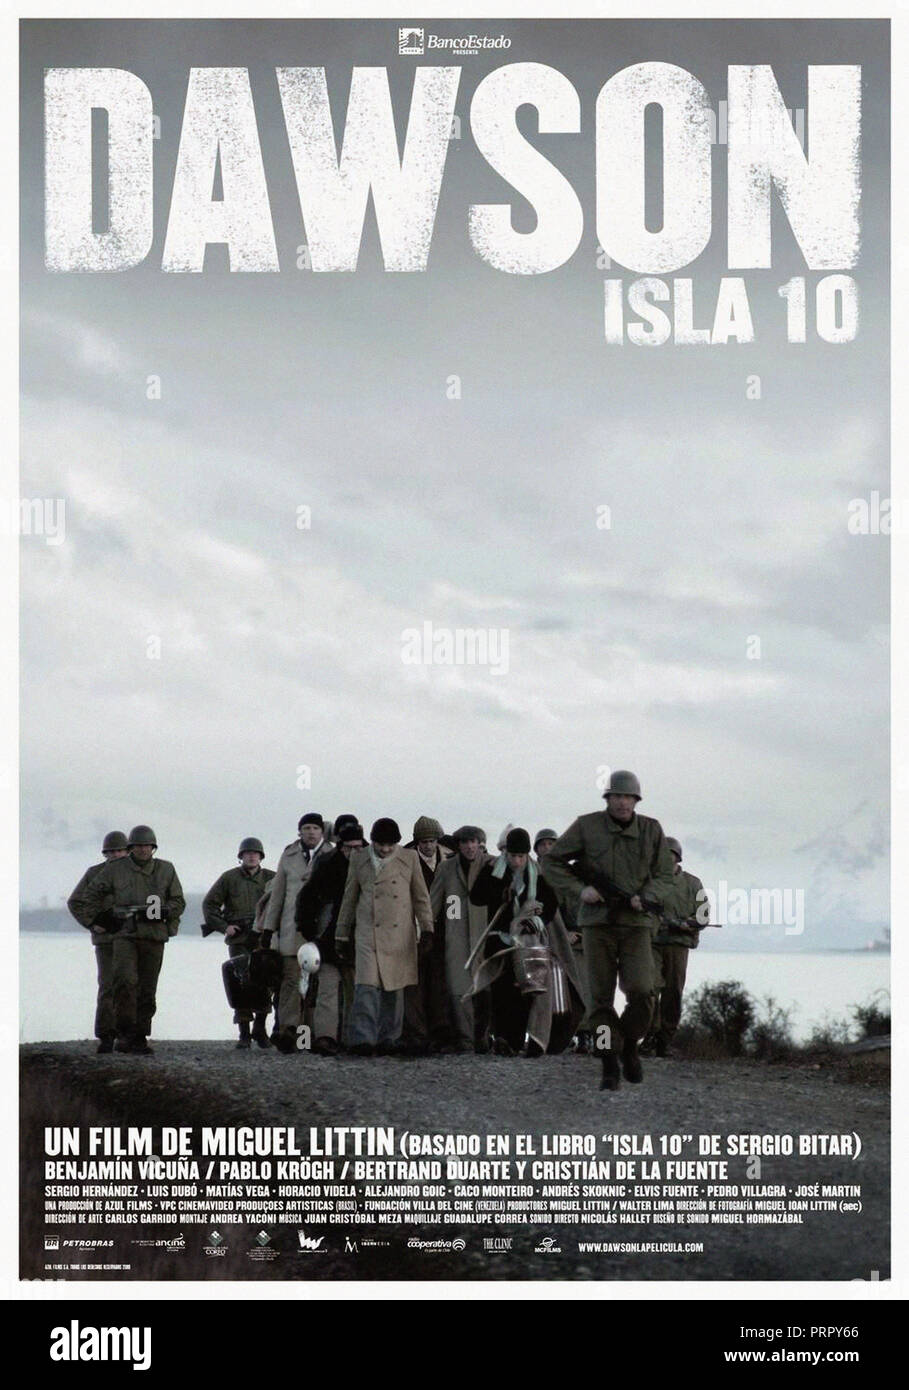 Prod DB © Azul Films - VPC Cinema Video / DR DAWSON ISLA 10 de Miguel Littin 2009 CHILI affiche chilienne pinochet, camp de concentration, dictature, - Stock Image